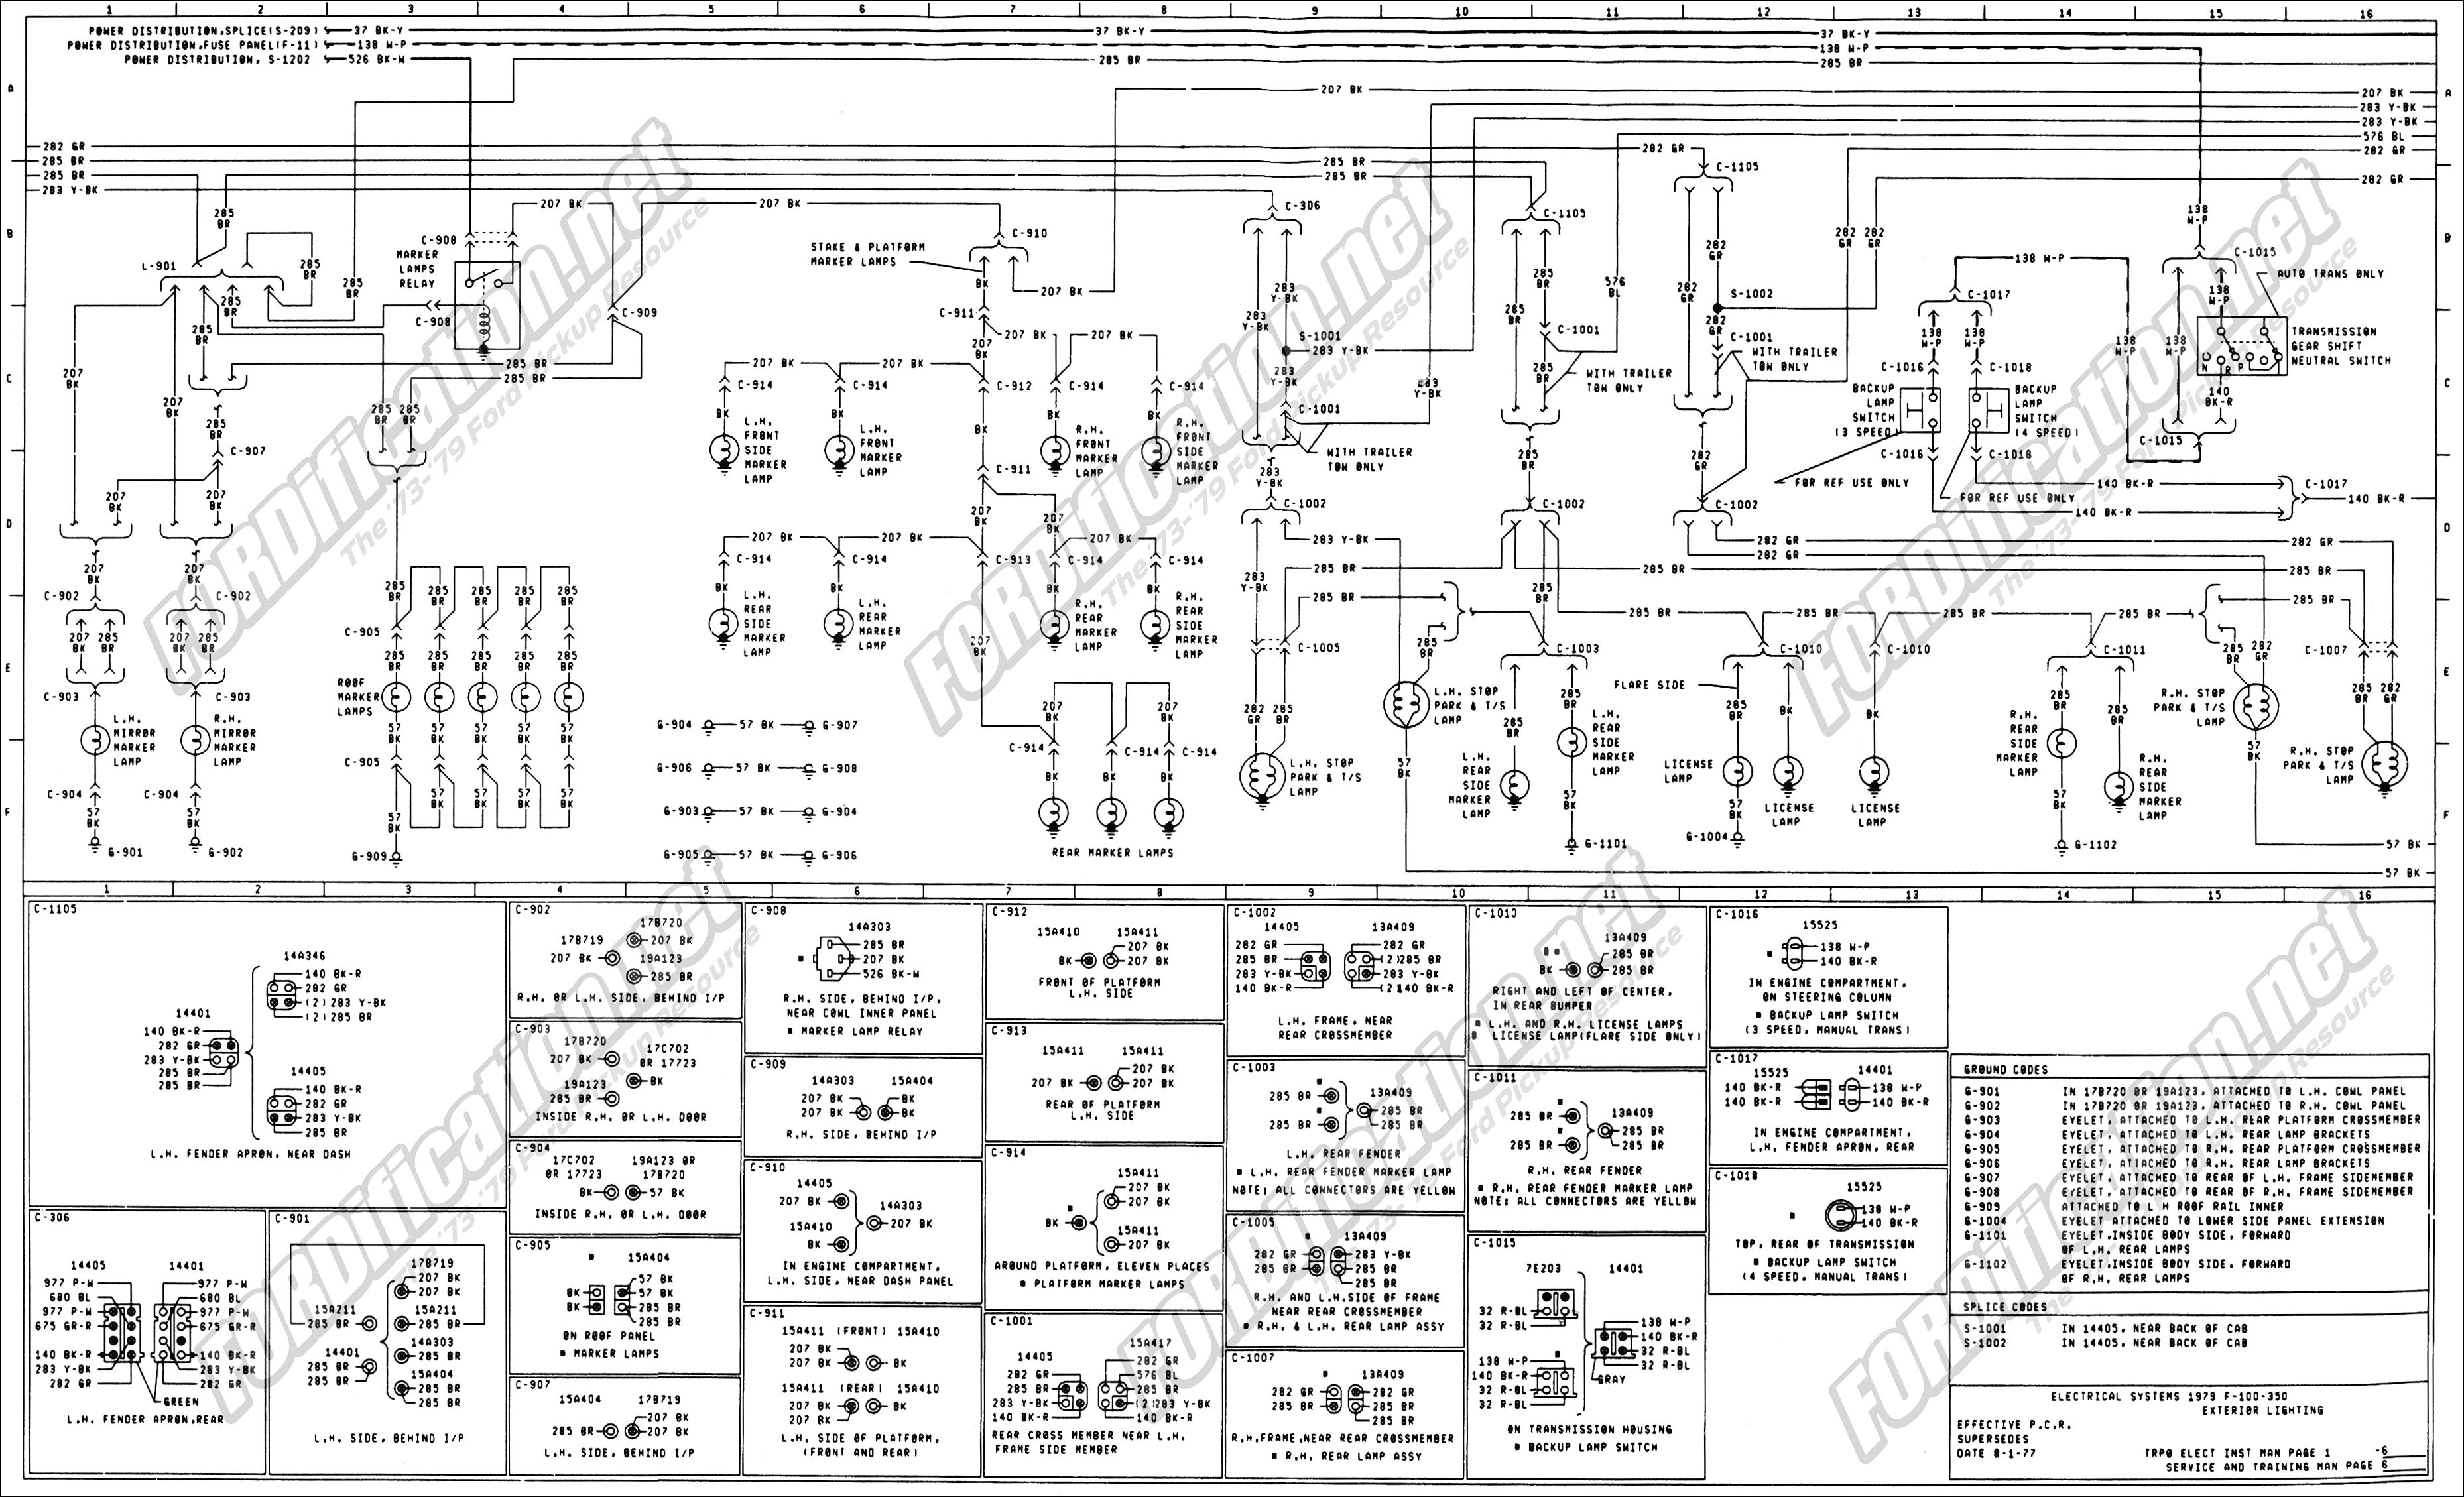 Fantastic Mga Wiring Diagram Ideas - Wiring Schematics and Diagrams ...